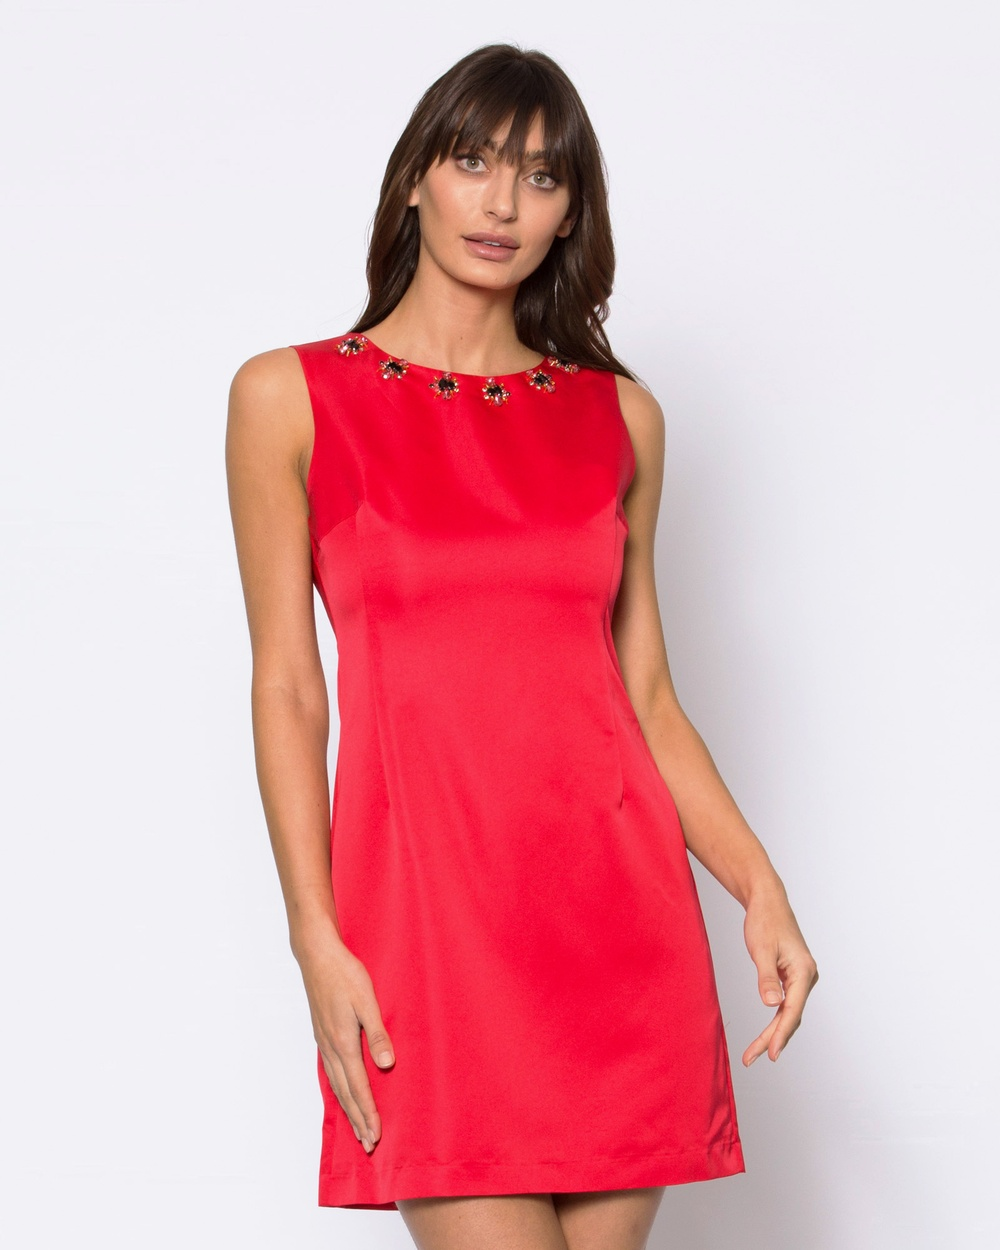 Alannah Hill Red Just For You Dress